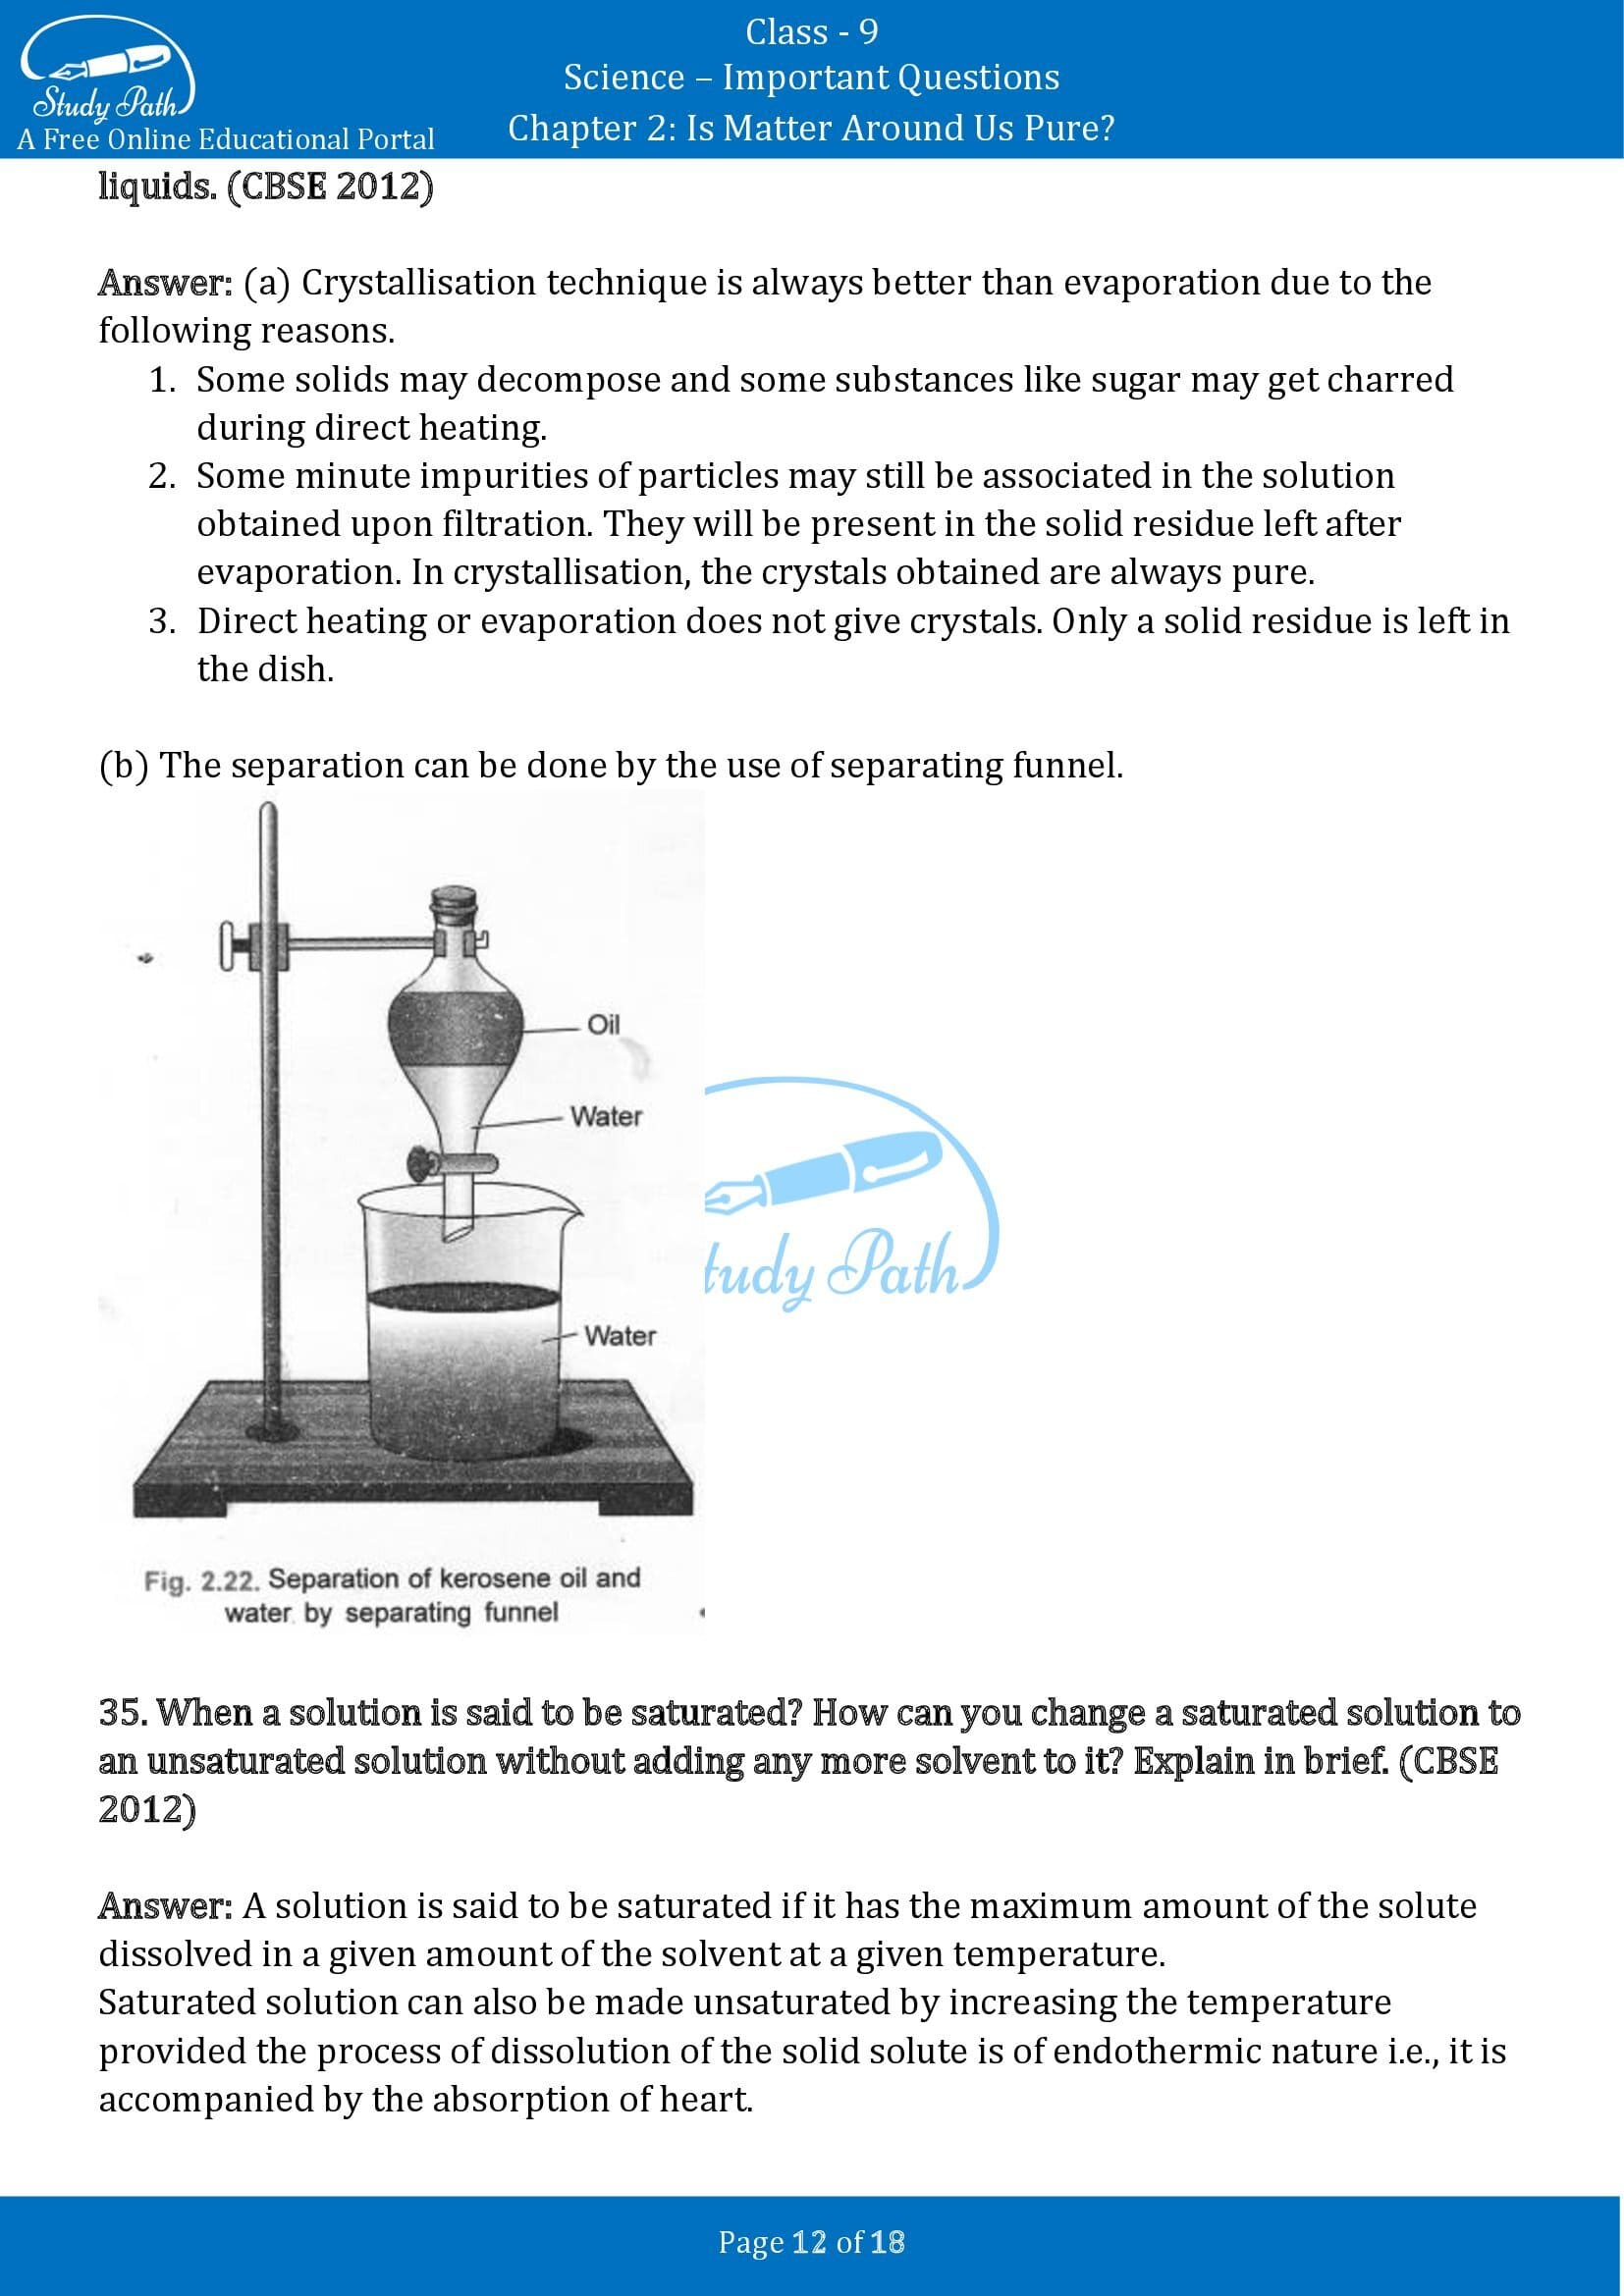 Important Questions for Class 9 Science Chapter 2 Is Matter Around Us Pure 00012